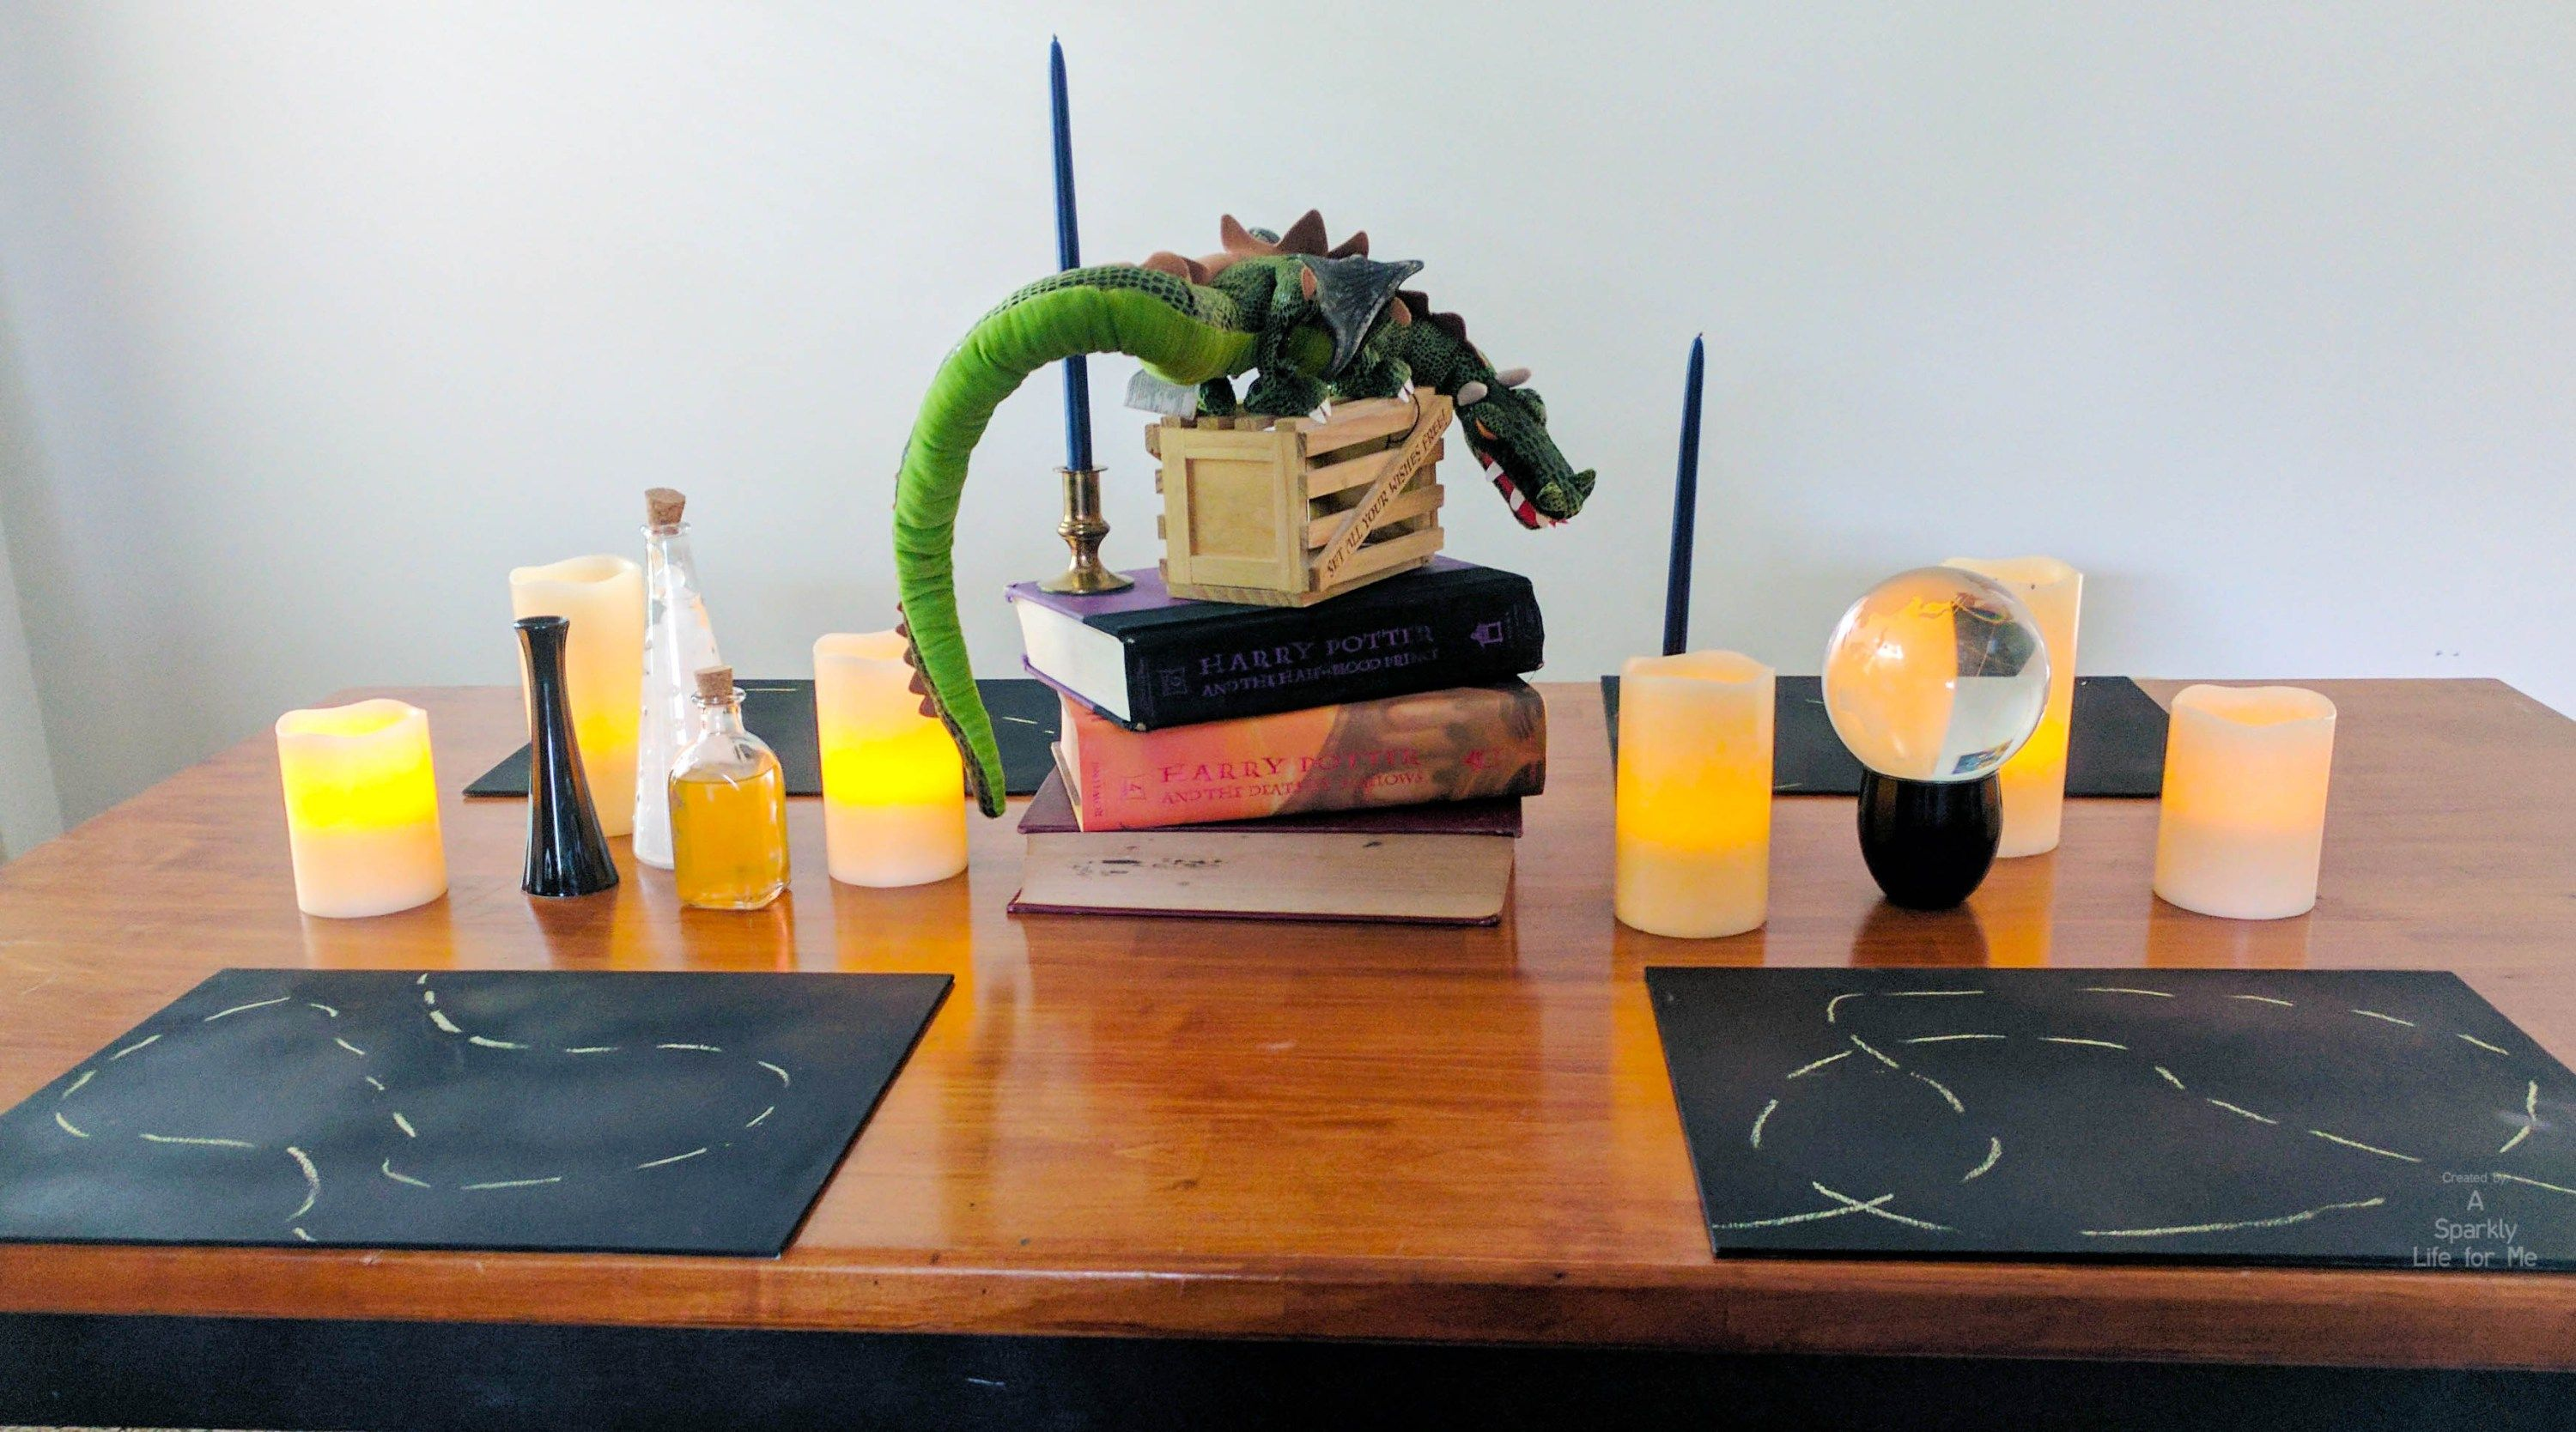 harry potter table decor and centerpiece Things I\u0027ve Made - Halloween Table Decorations Pinterest